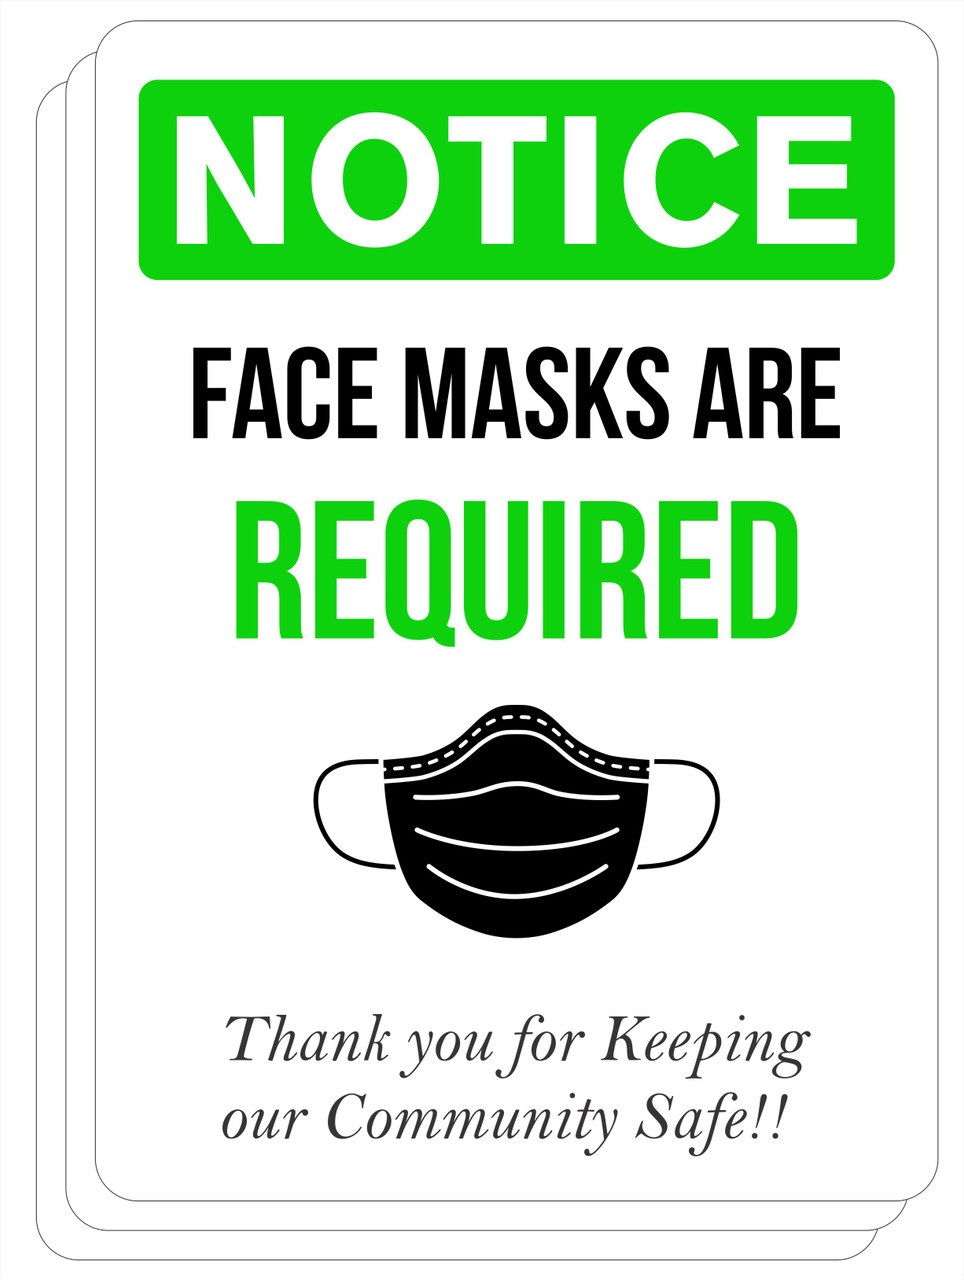 NOTICE Face Masks Required Thank You for Keeping Our Community Safe Sign - COVID-19 Sign Green